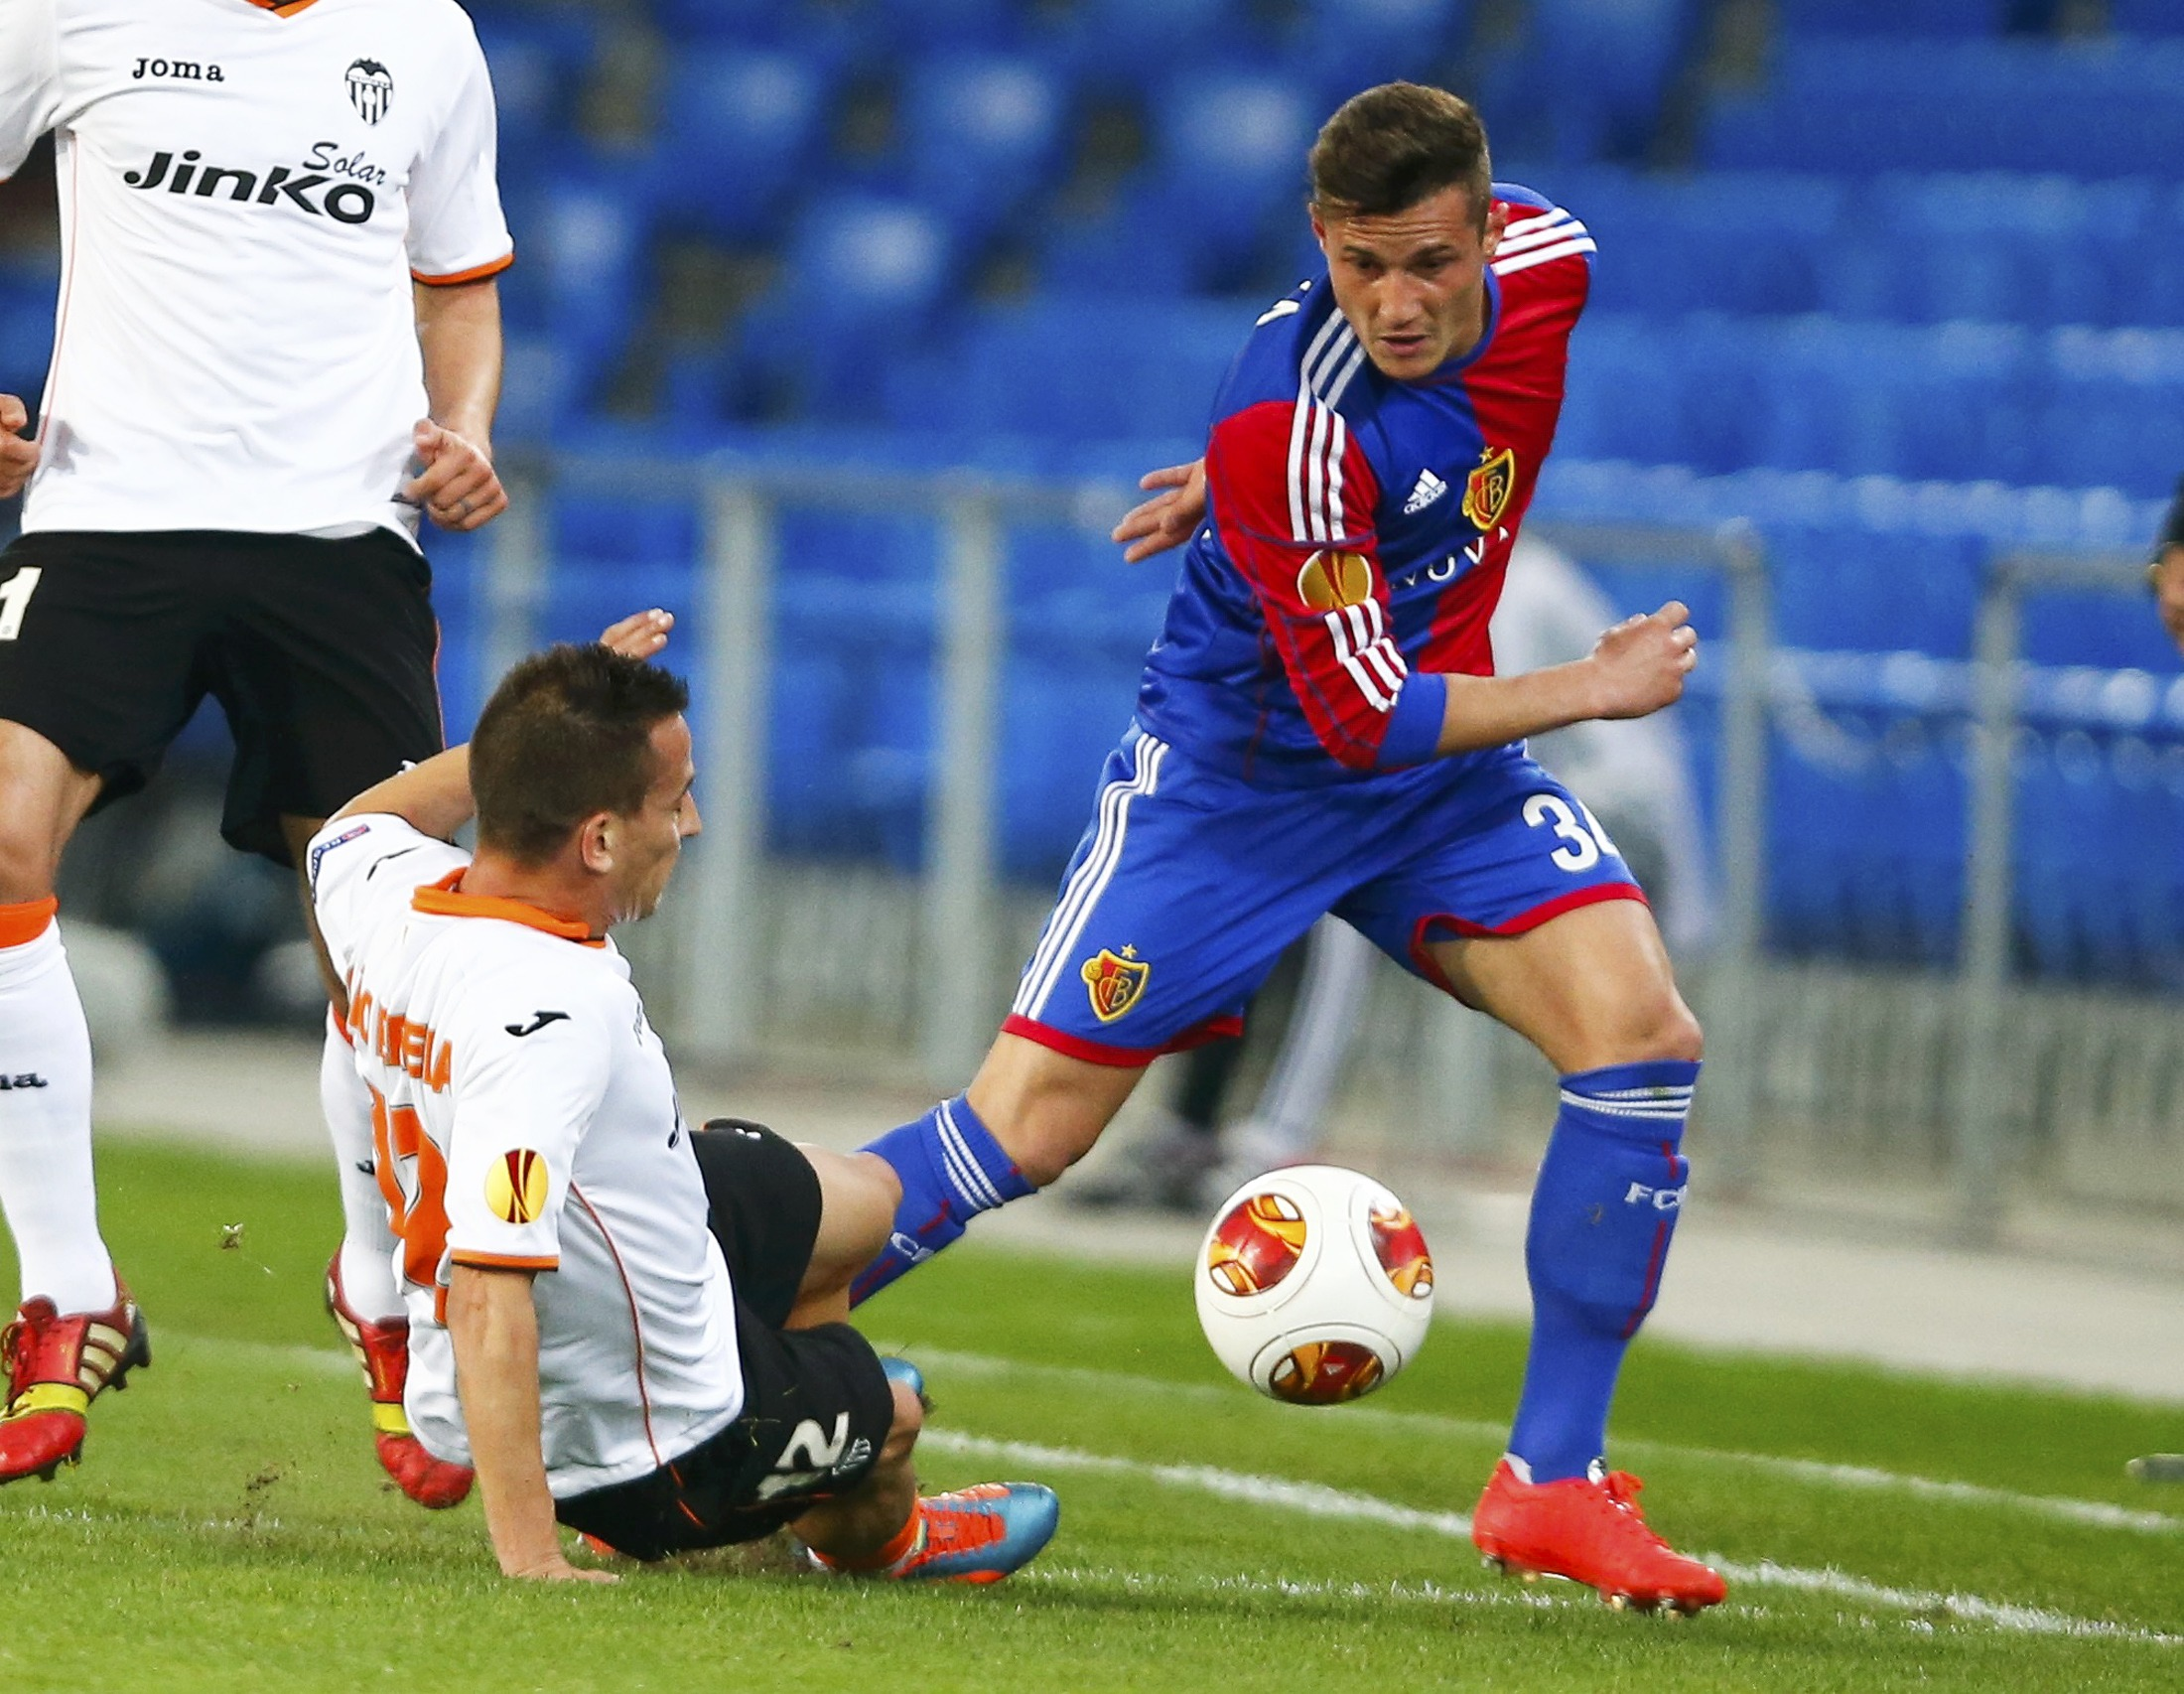 Valencia's Joao Pereira fights for the ball with FC Basel's Taulant Xhaka (R) during their Europa League quarter-final first leg soccer match in St.Jakob-Park stadium in Basel, April 3, 2014.  REUTERS/Arnd Wiegmann (SWITZERLAND  - Tags: SPORT SOCCER)